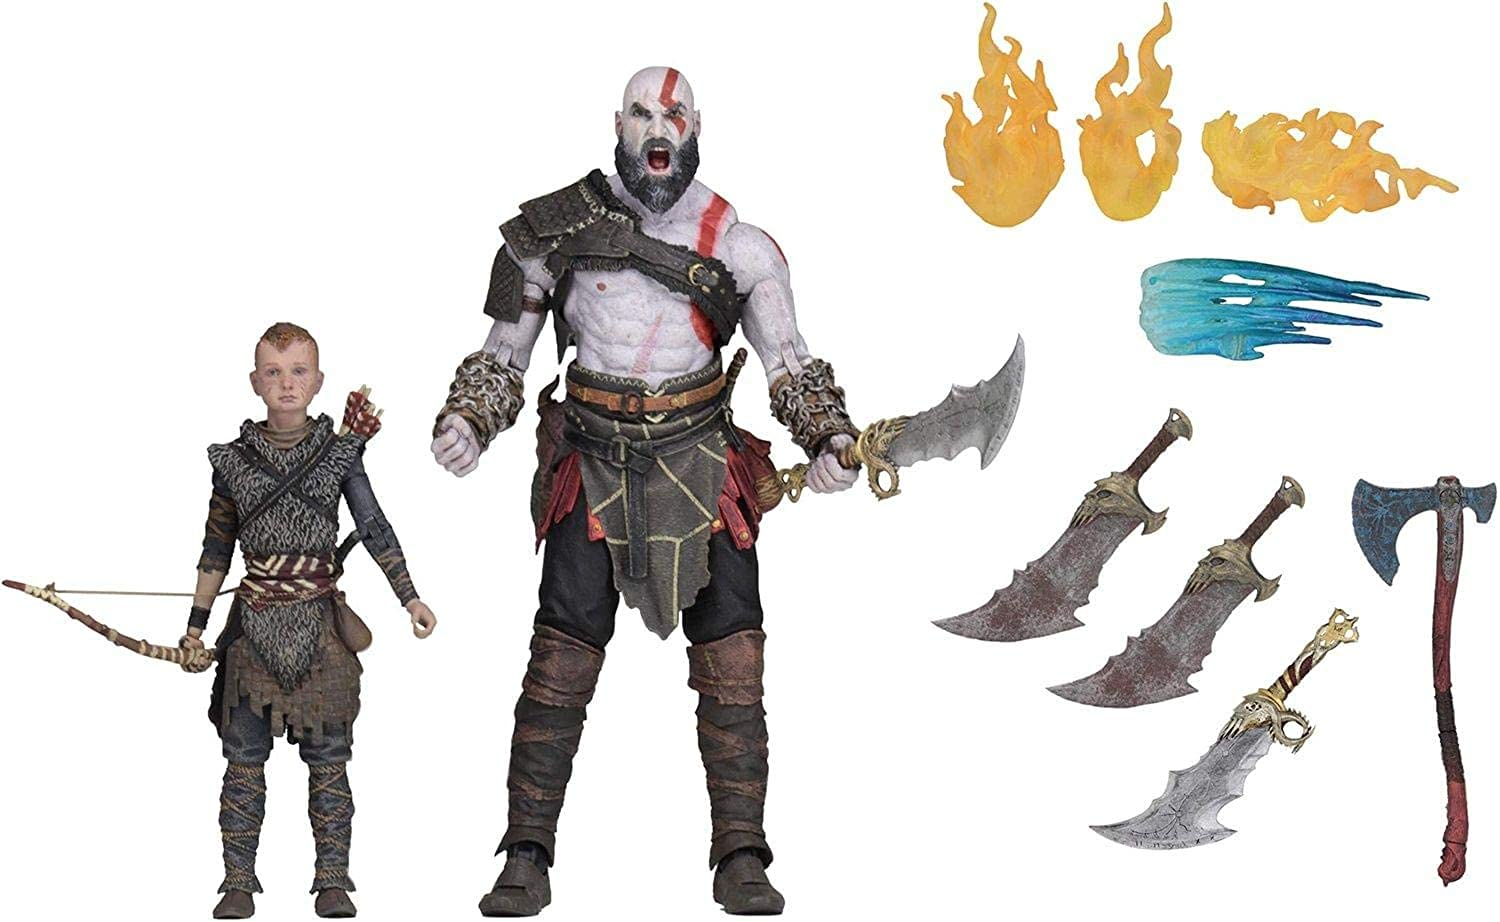 Neca- God of War Pack 2 Figuren Kratos & Atreus, mehrfarbig (NECA49326)